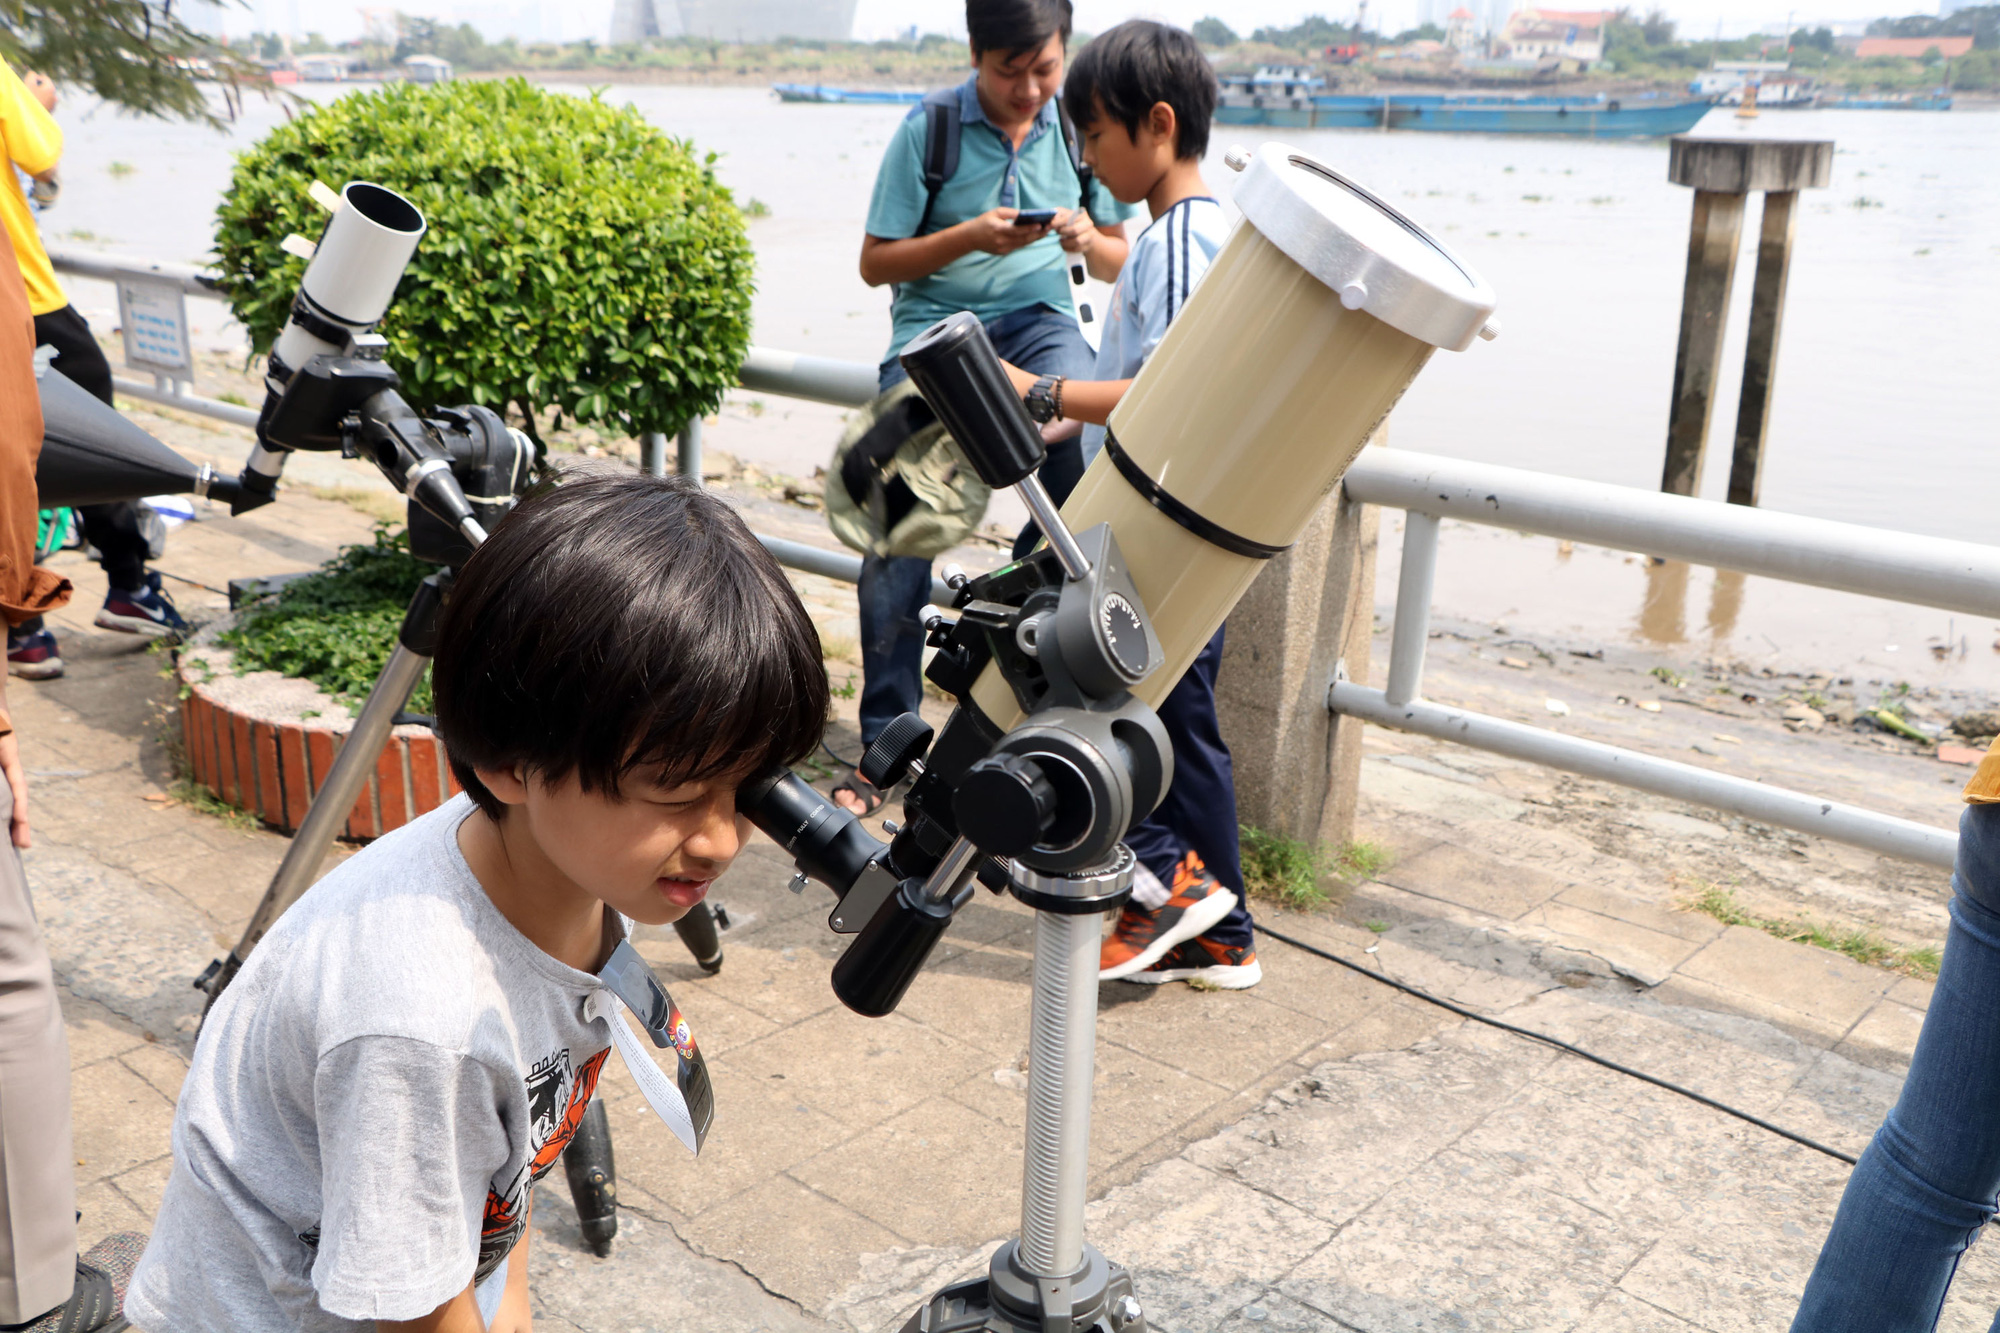 A boy views a solar eclipse through a telescope in Ho Chi Minh City on December 26, 2019. Photo: Trong Nhan / Tuoi Tre